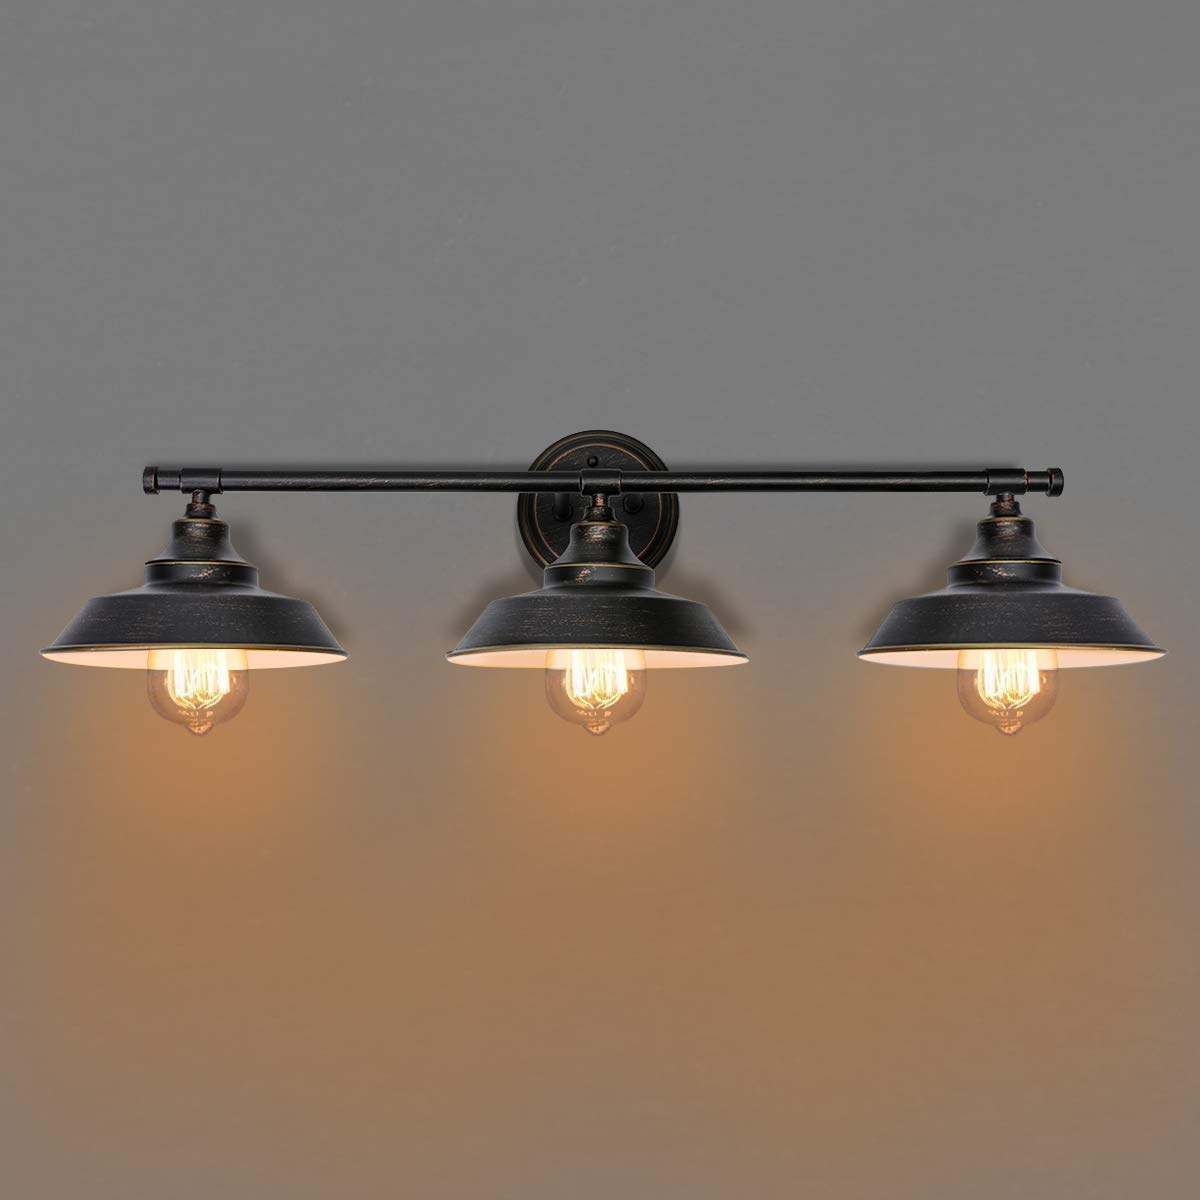 Bathroom Vanity Light 3 Light Wall Sconce Fixture Industrial Indoor Wall Lamp Vintage Bedroom Bedside Antique Wall Mount Light